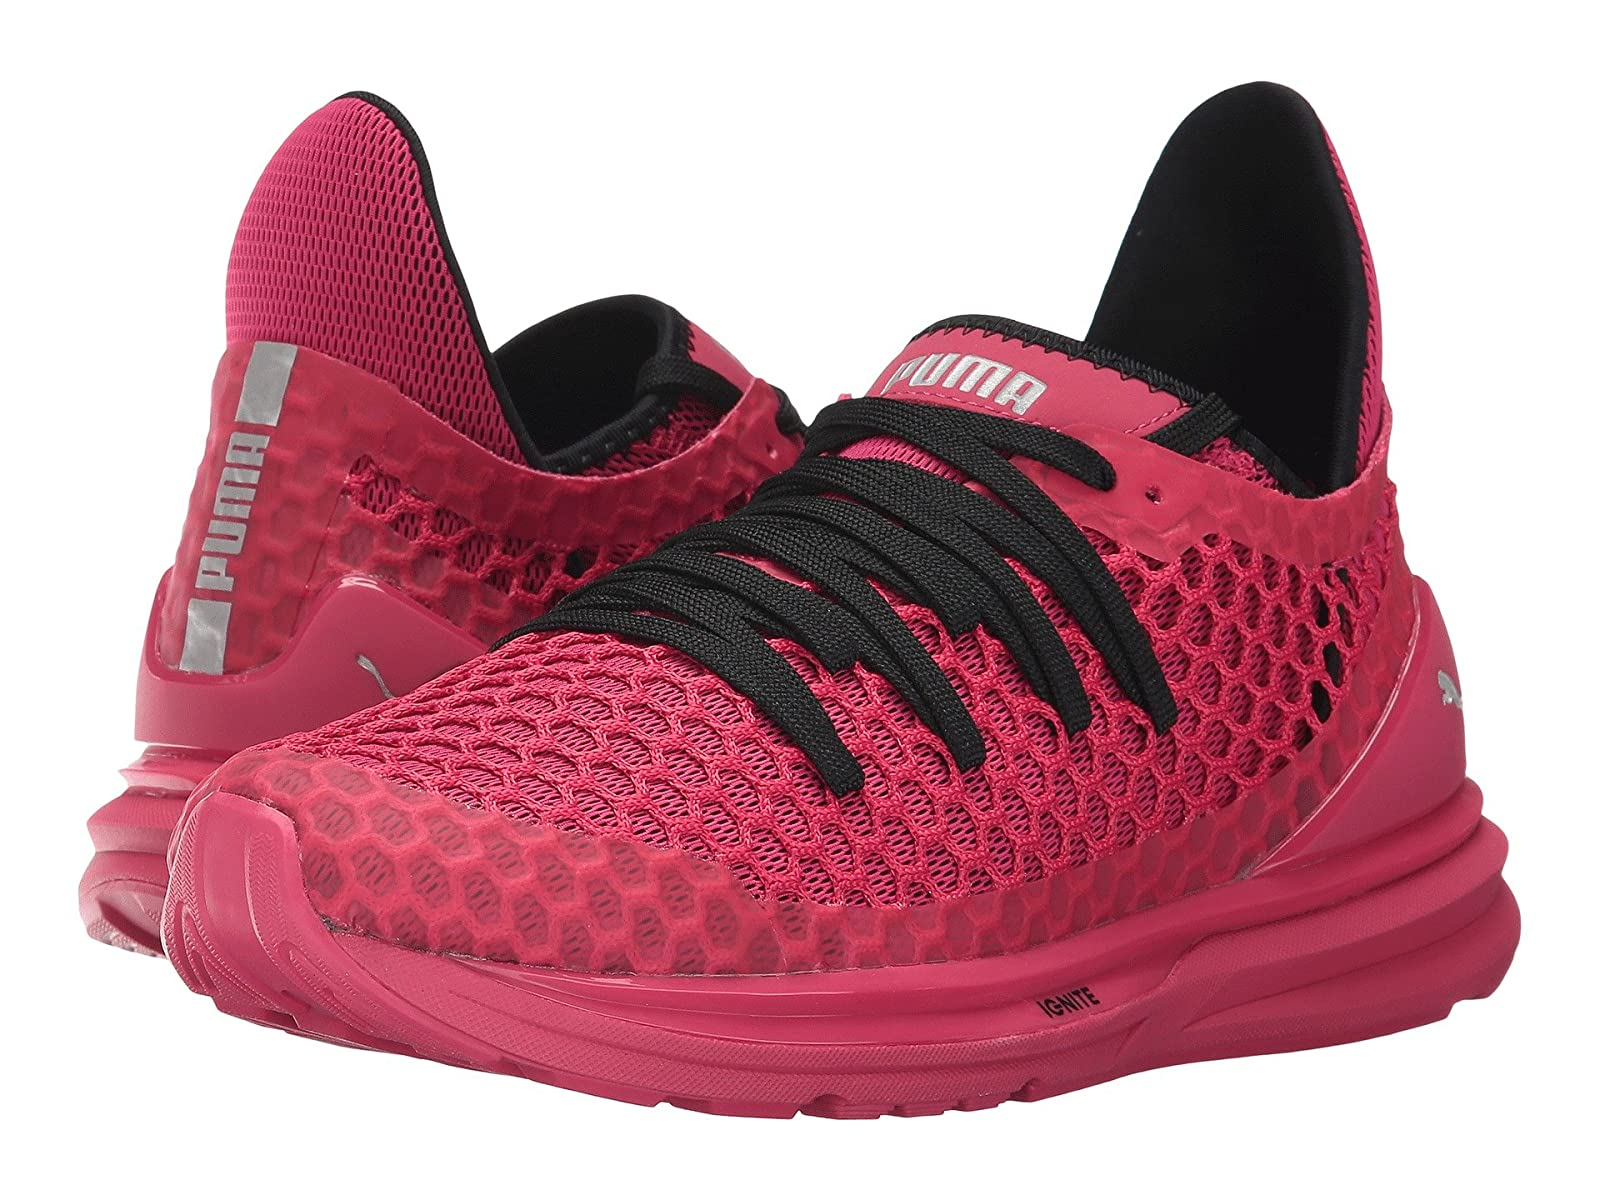 PUMA Ignite Limitless NetfitCheap and distinctive eye-catching shoes